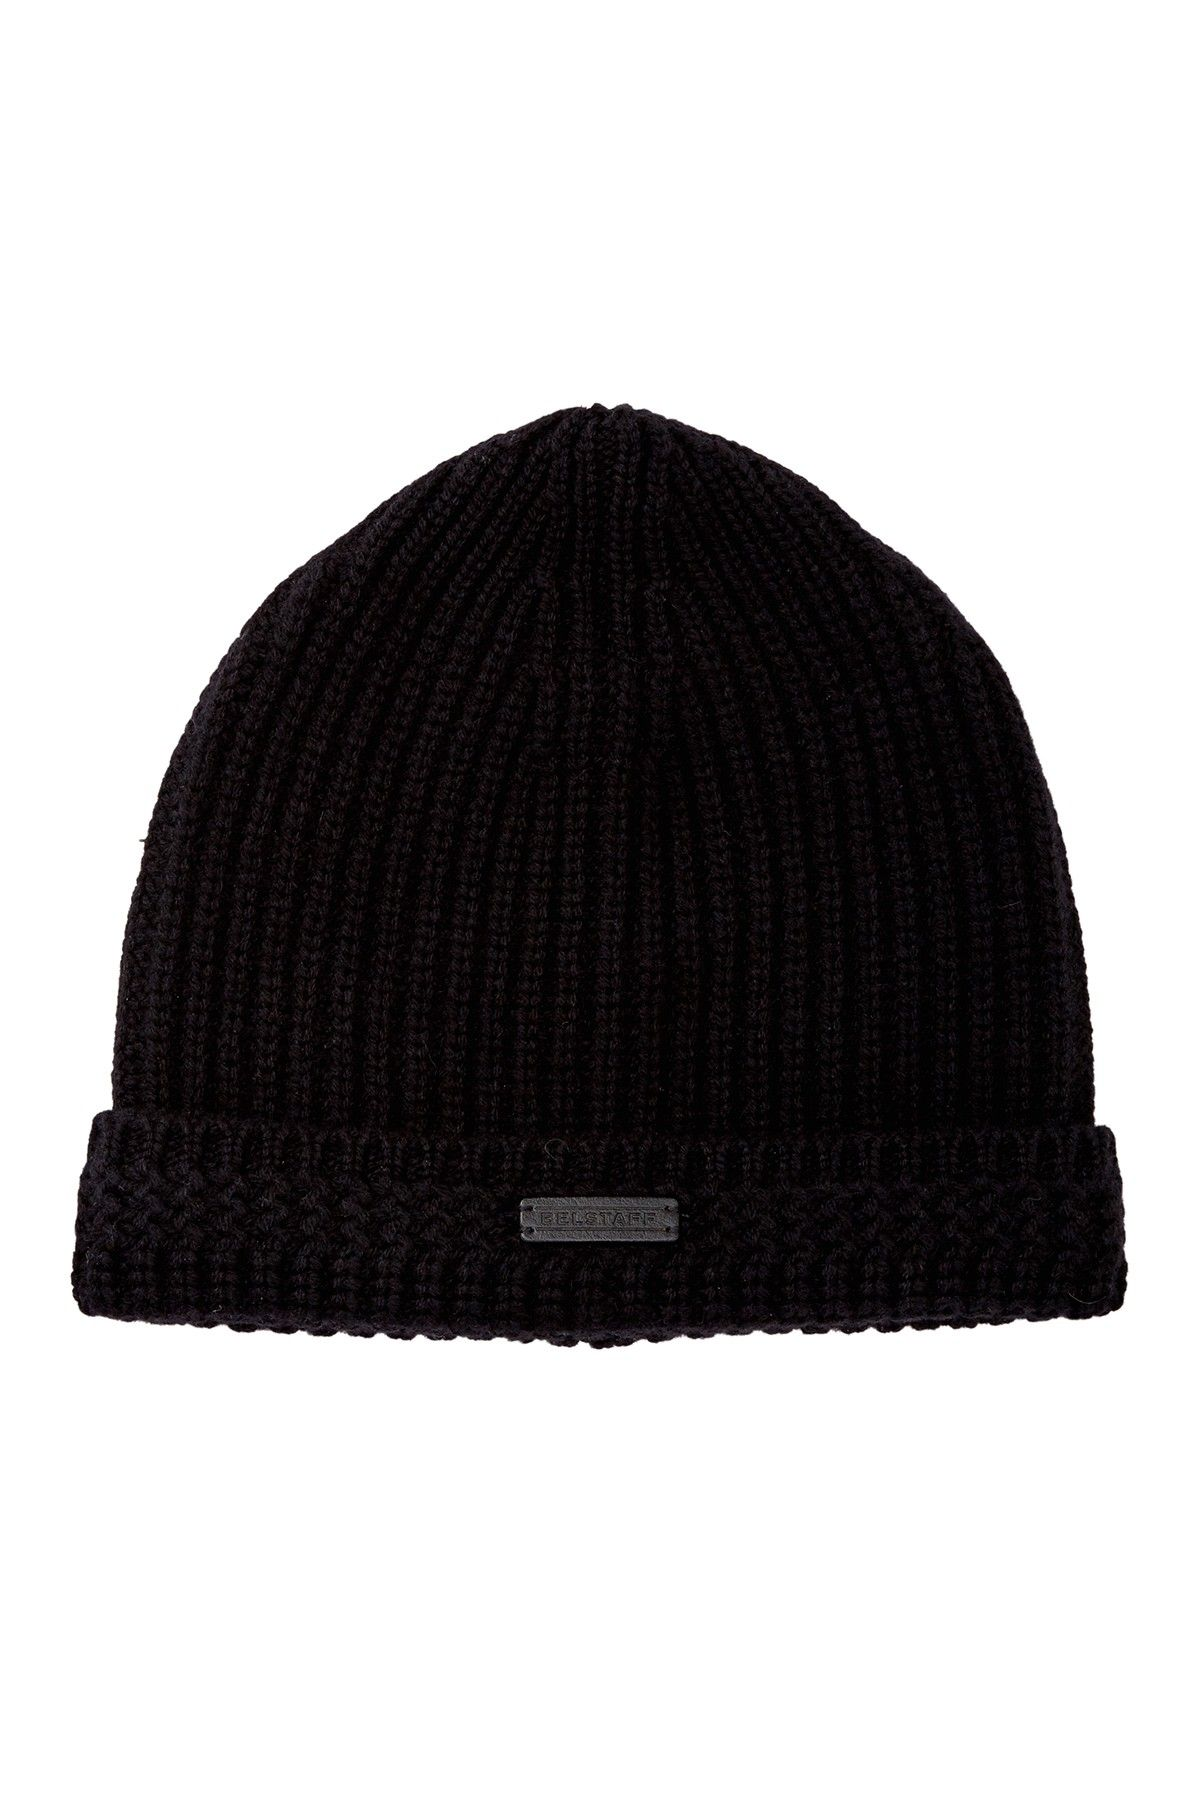 new authentic b1e33 19a6d seabrook knitted hat - anuarios-escolares.com c84090d0aec5